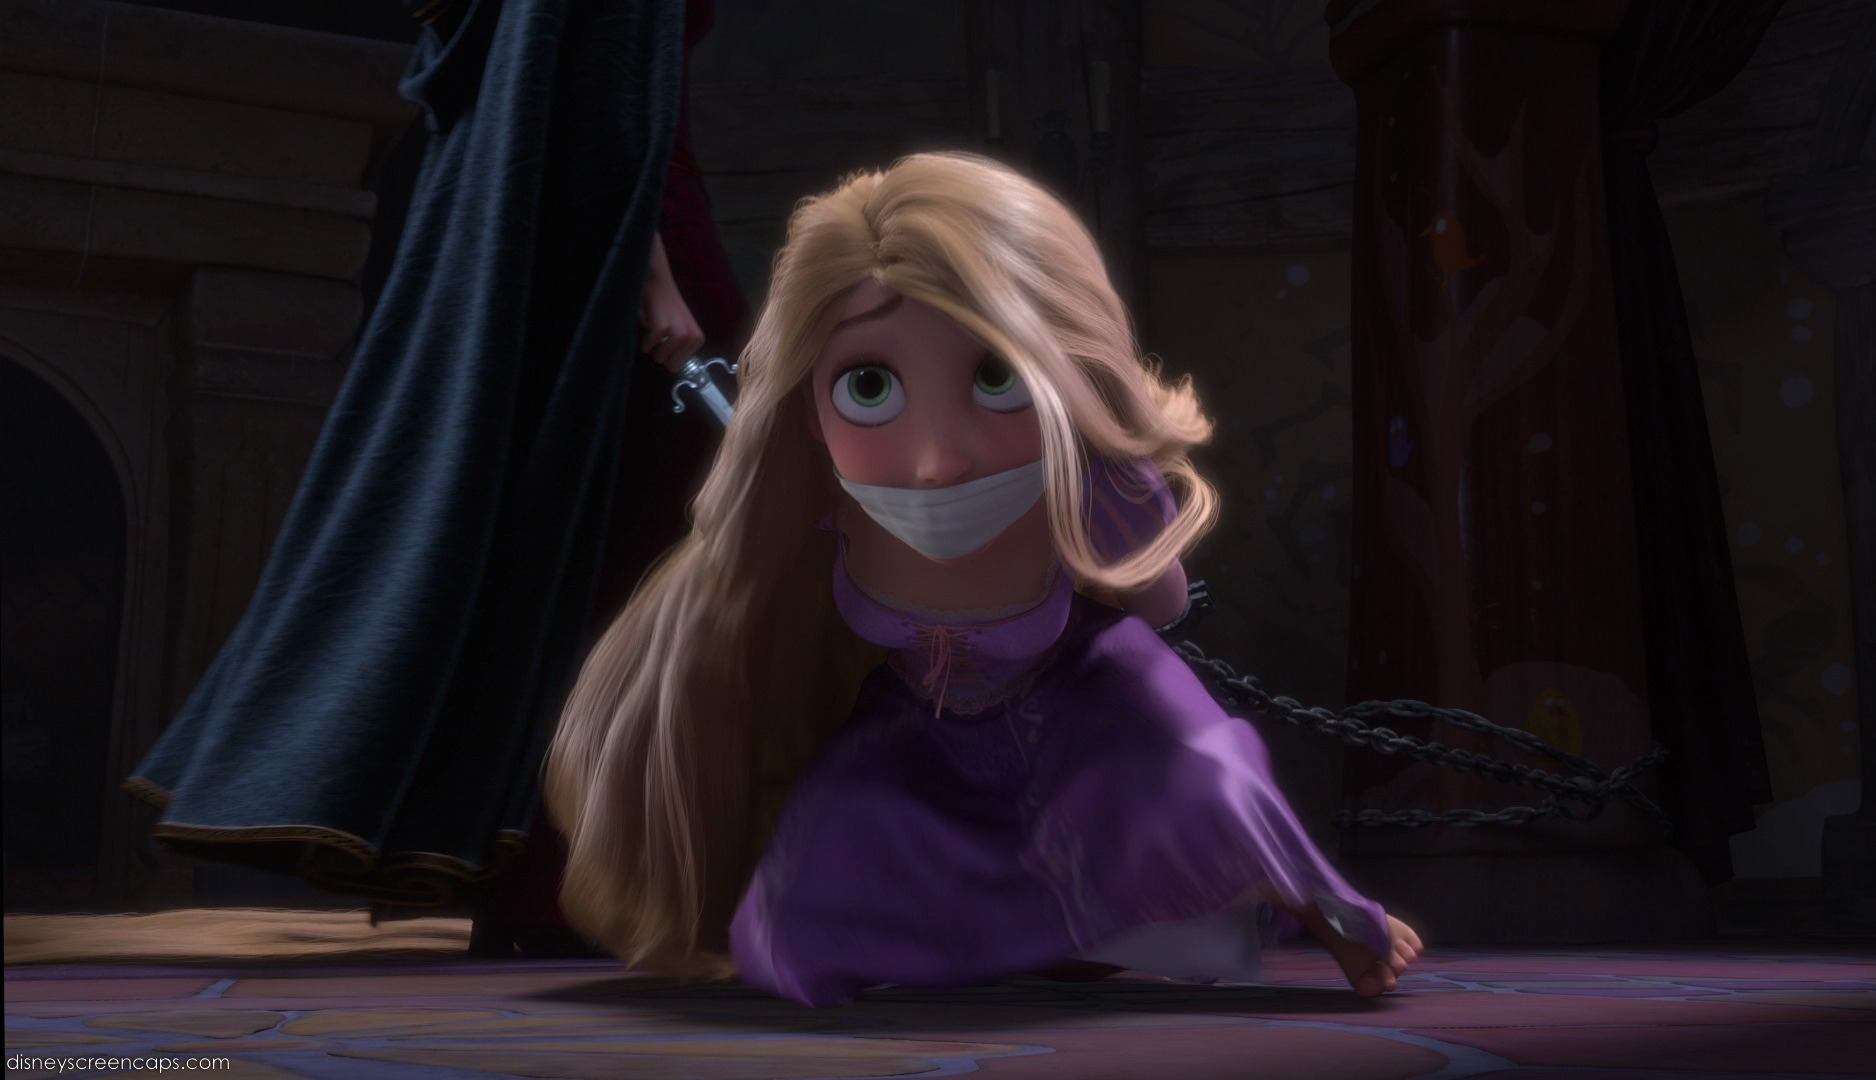 How to look like rapunzel from tangled 11